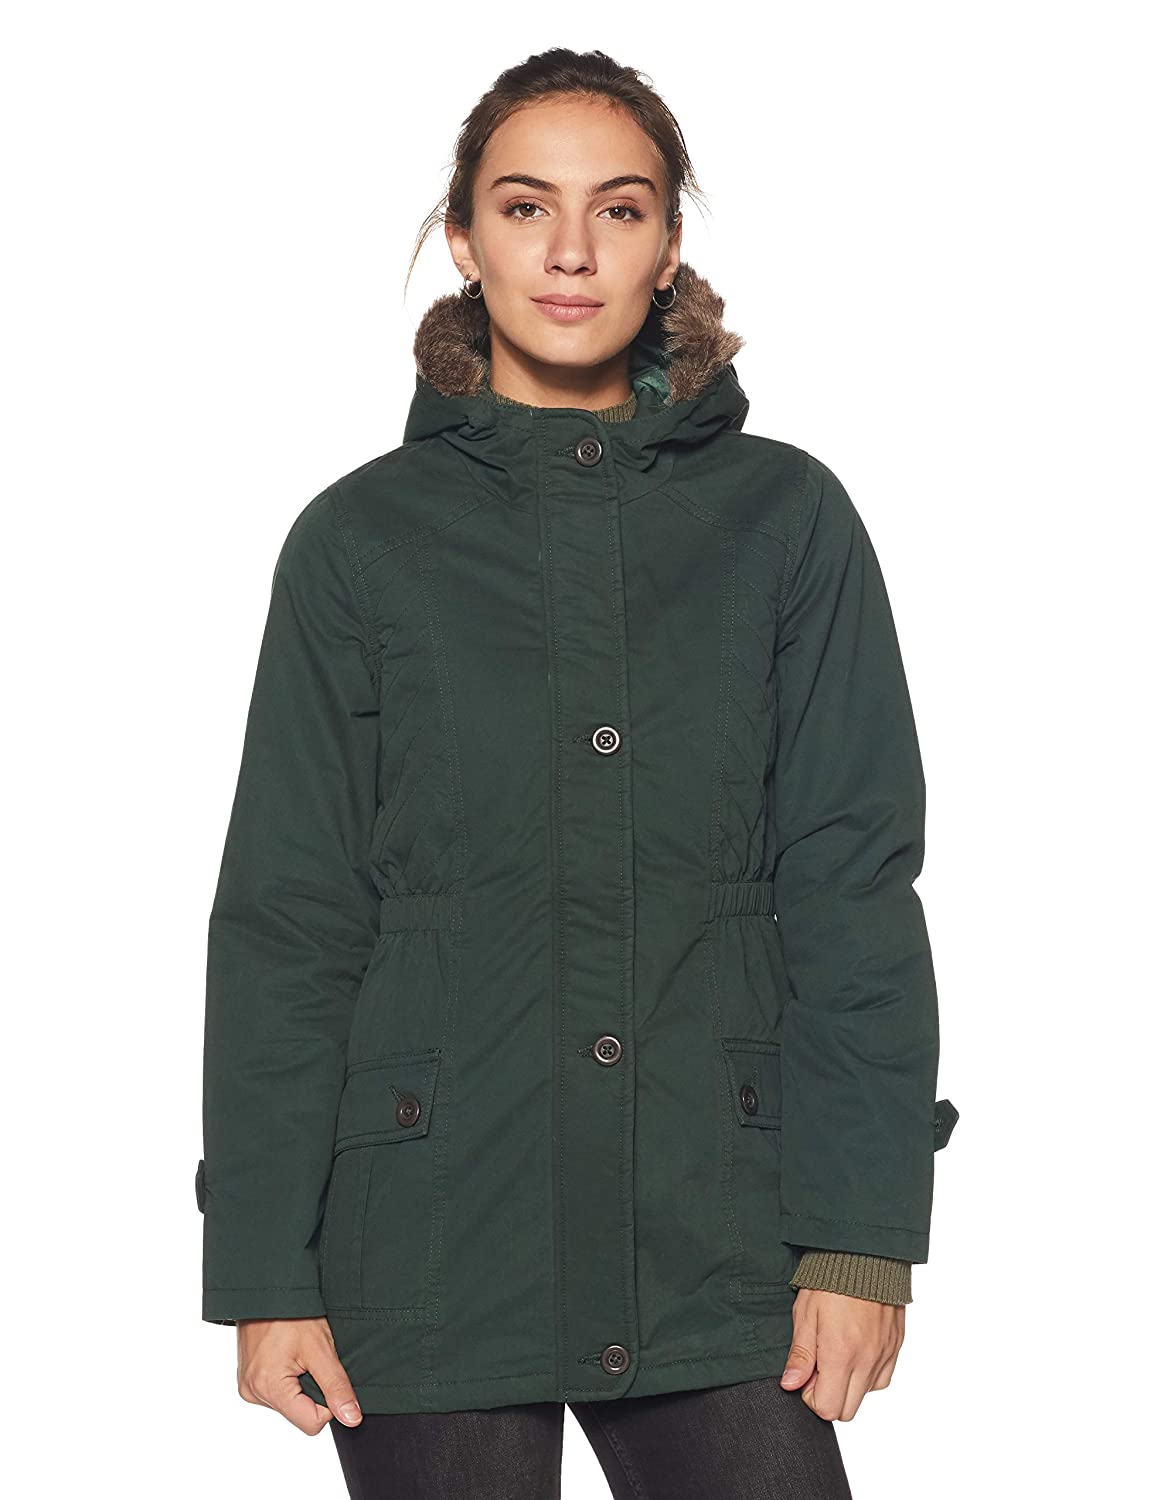 Endeavor Women's Parka Jacket